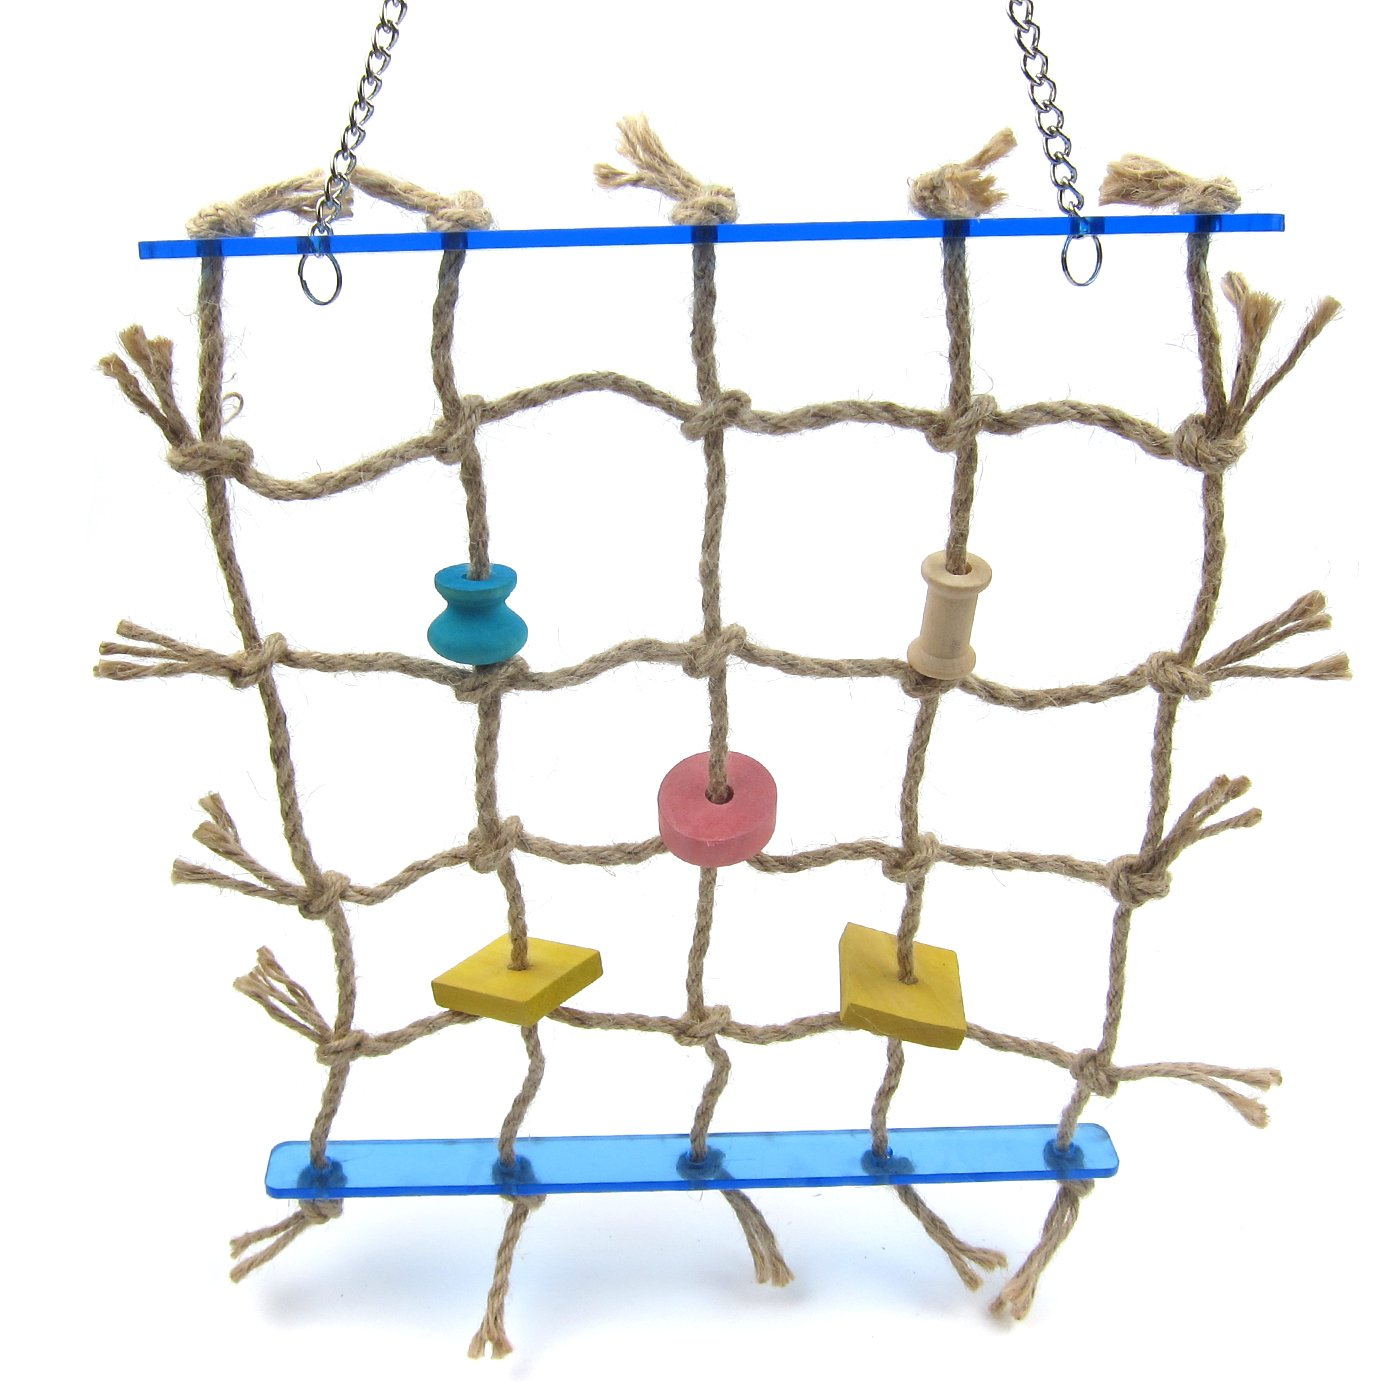 Alfie Pet by Petoga Couture - Kaelin Hanging Rope Ladder Toy for Birds by Alfie (Image #1)